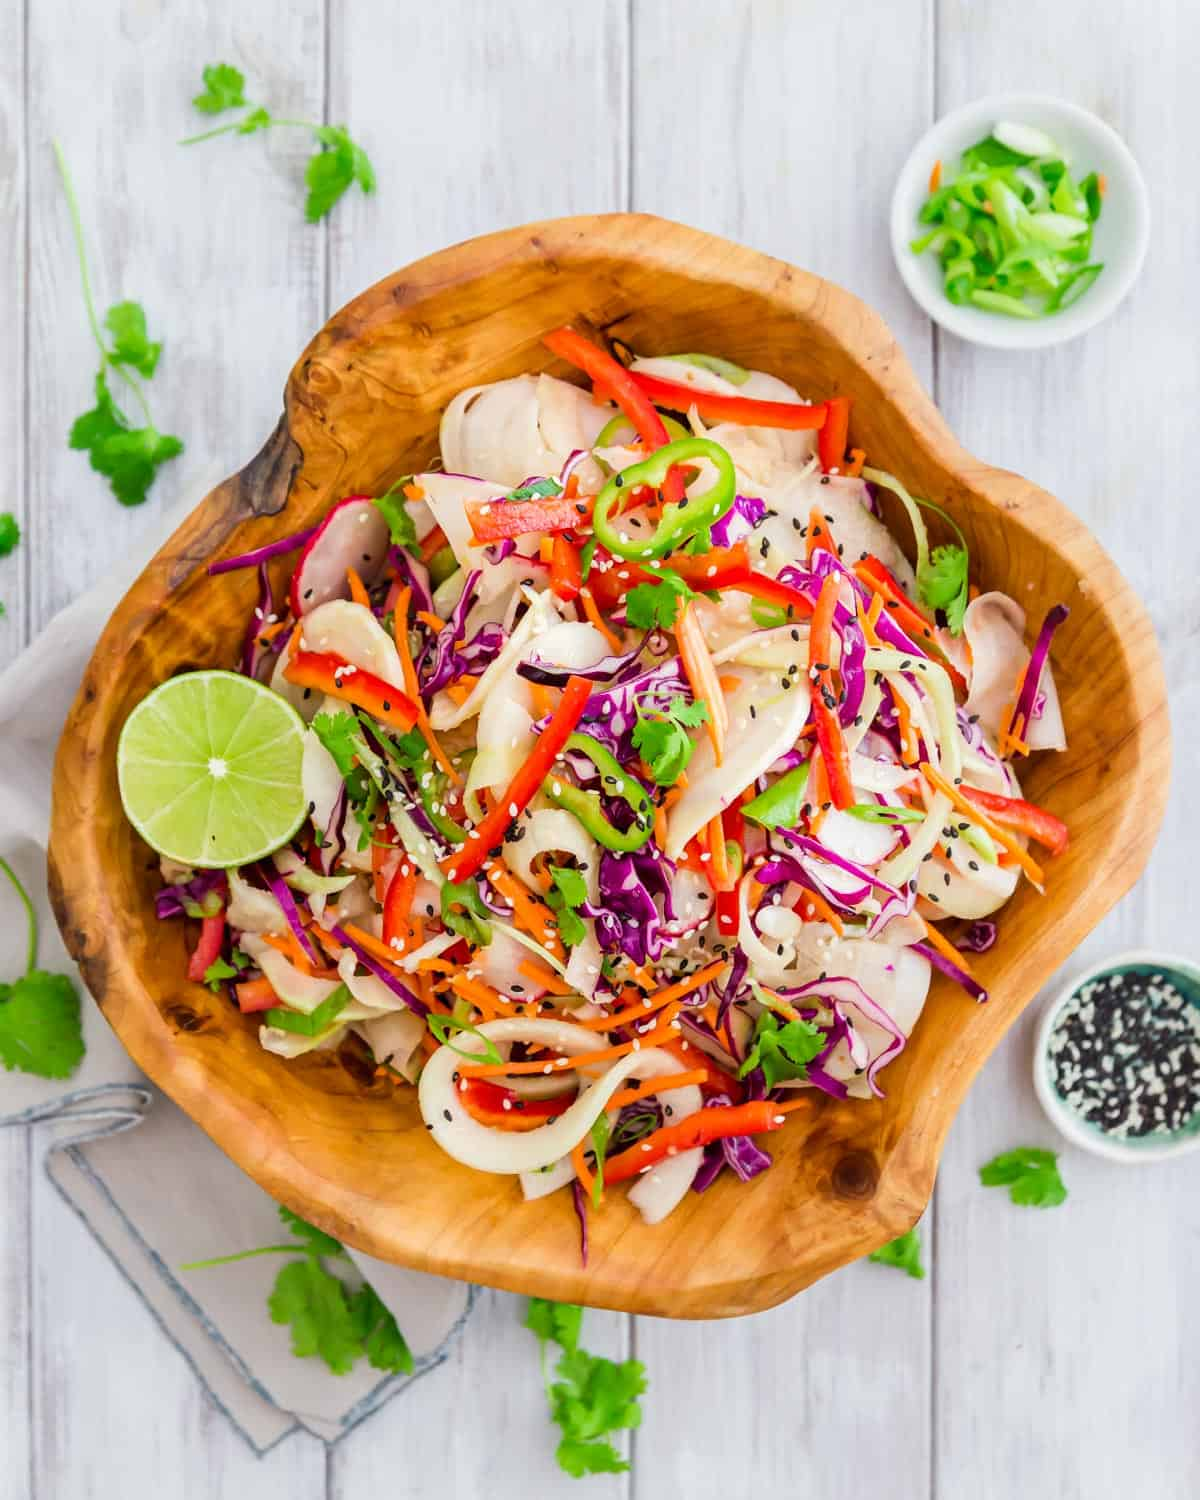 A colorful, easy salad with kohlrabi noodles, red cabbage, red pepper, carrots, radishes and green onion all tossed with a Thai inspired vinaigrette.